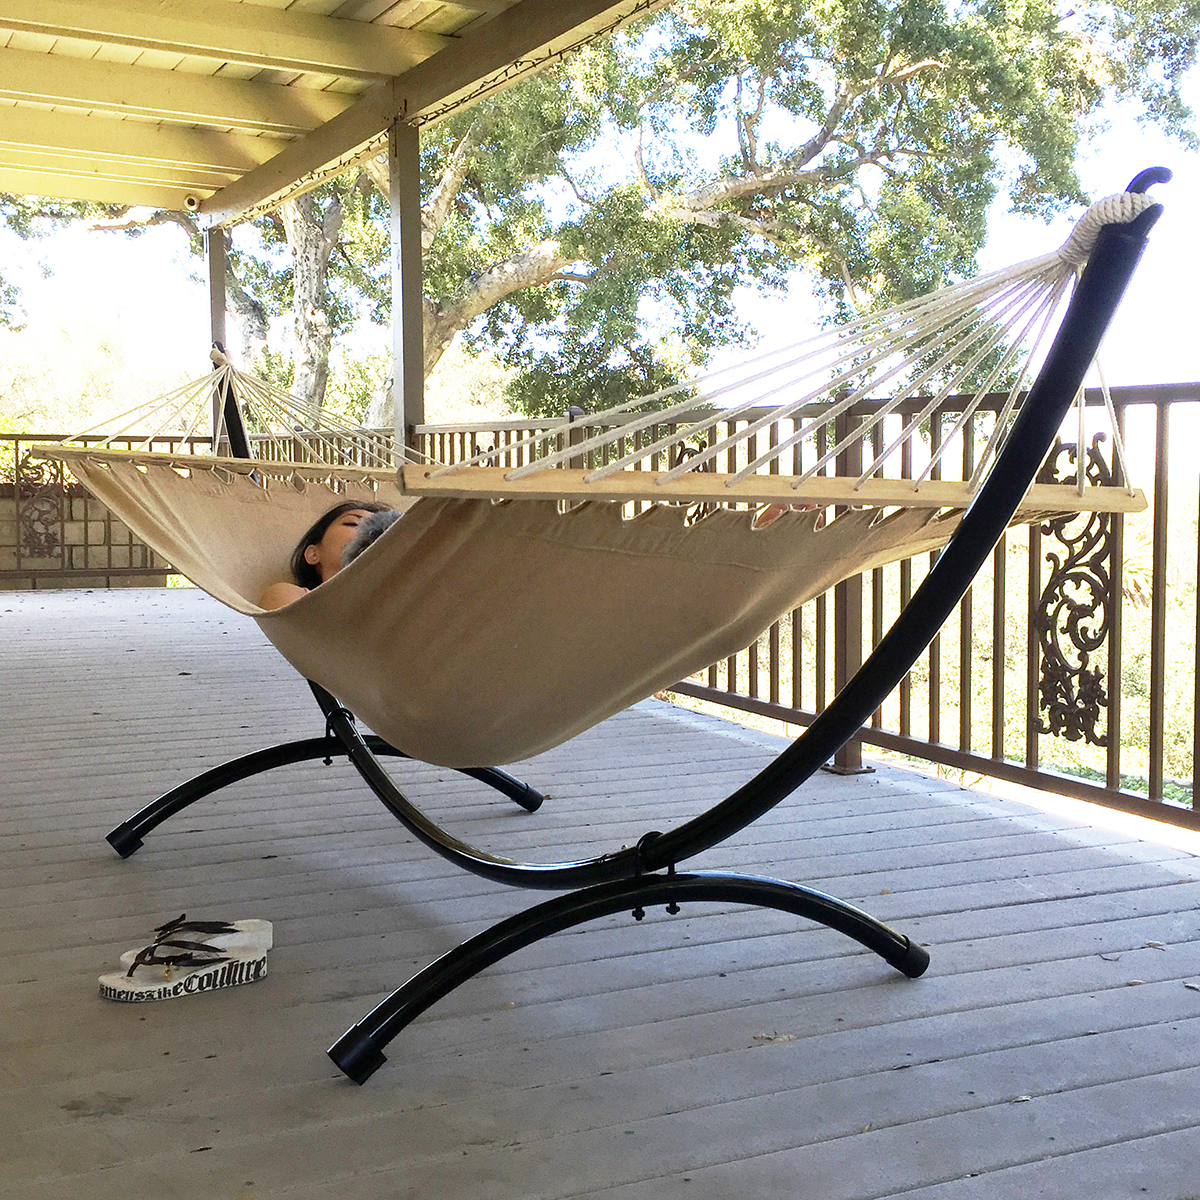 Steel Hammock Stand Heavy Duty Tri-Beam Outdoor Patio ...